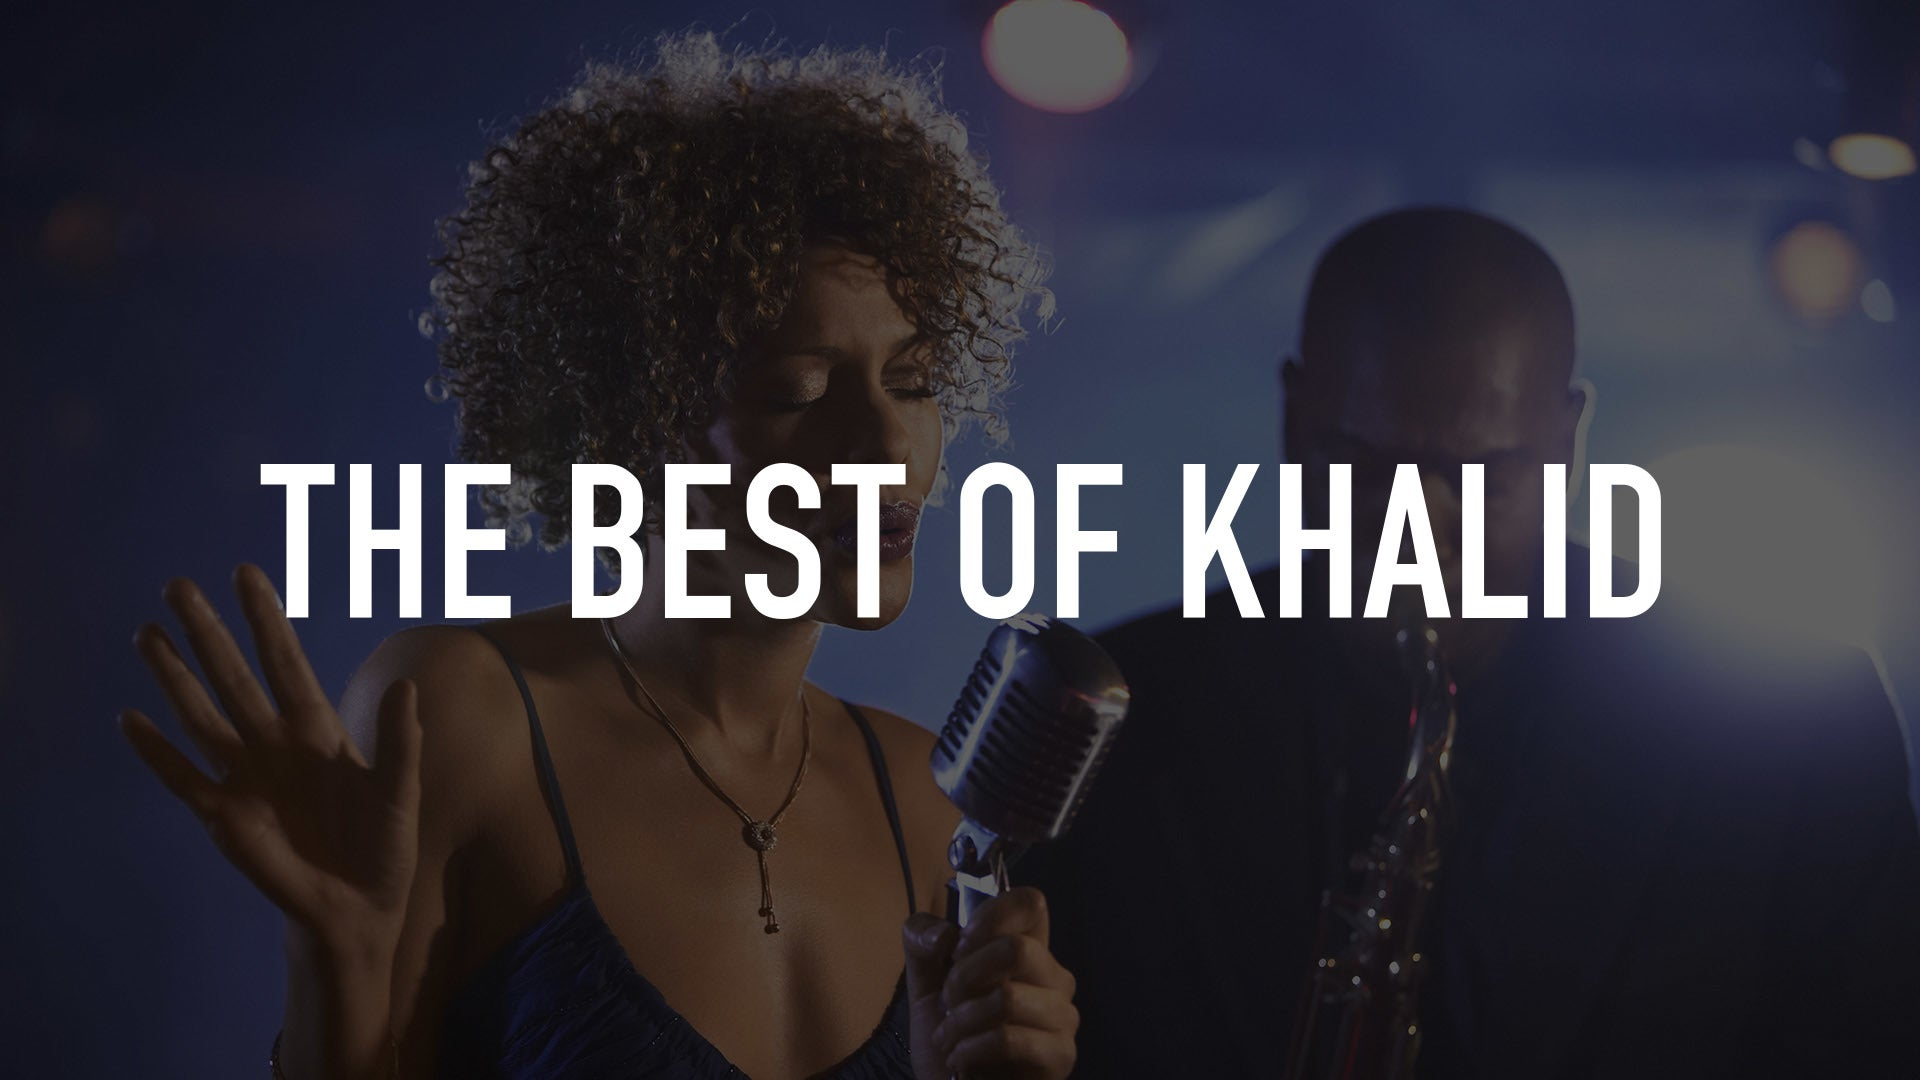 The Best of Khalid